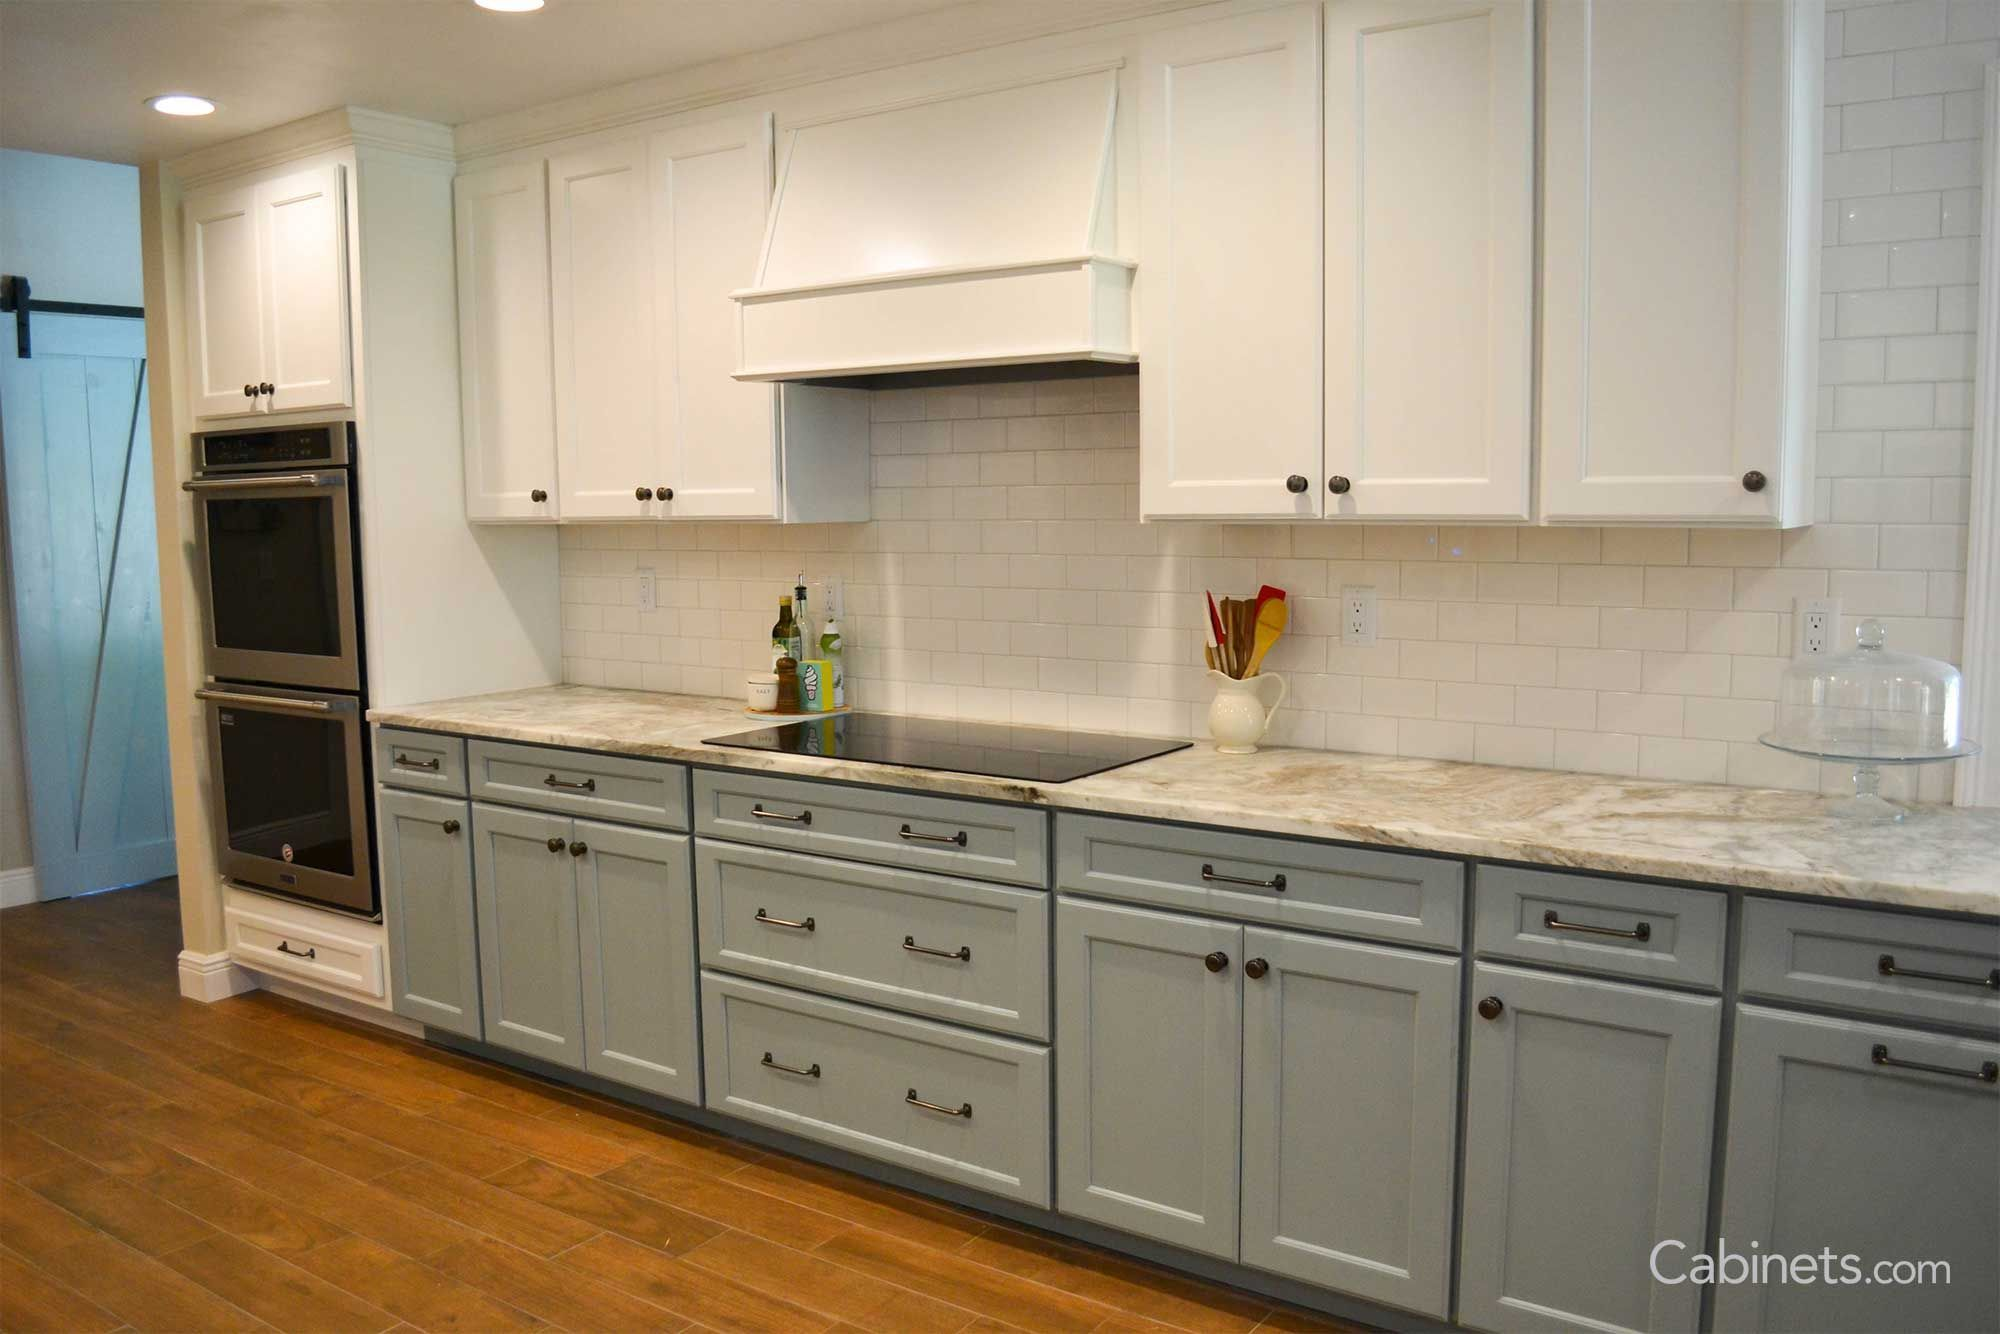 Coastal Two Tone Galley Kitchen With Wood Hood Cabinets Com Cabinetscom Coastal Galley Hood Ki In 2020 Kitchen Cabinets Kitchen Cabinet Trends Kitchen Renovation